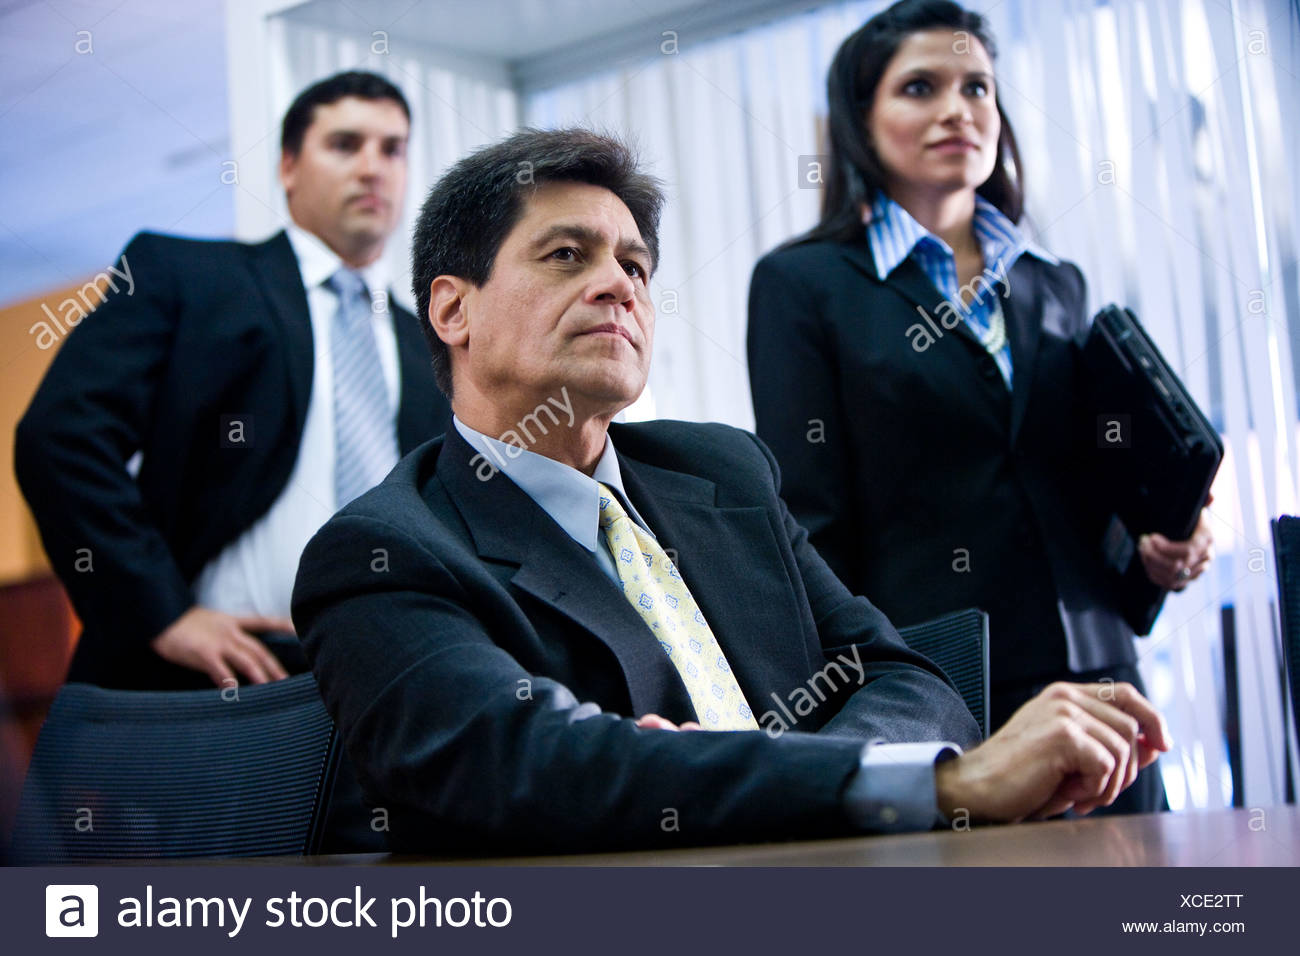 Hispanic businessman in meeting with younger colleagues behind Stock Photo